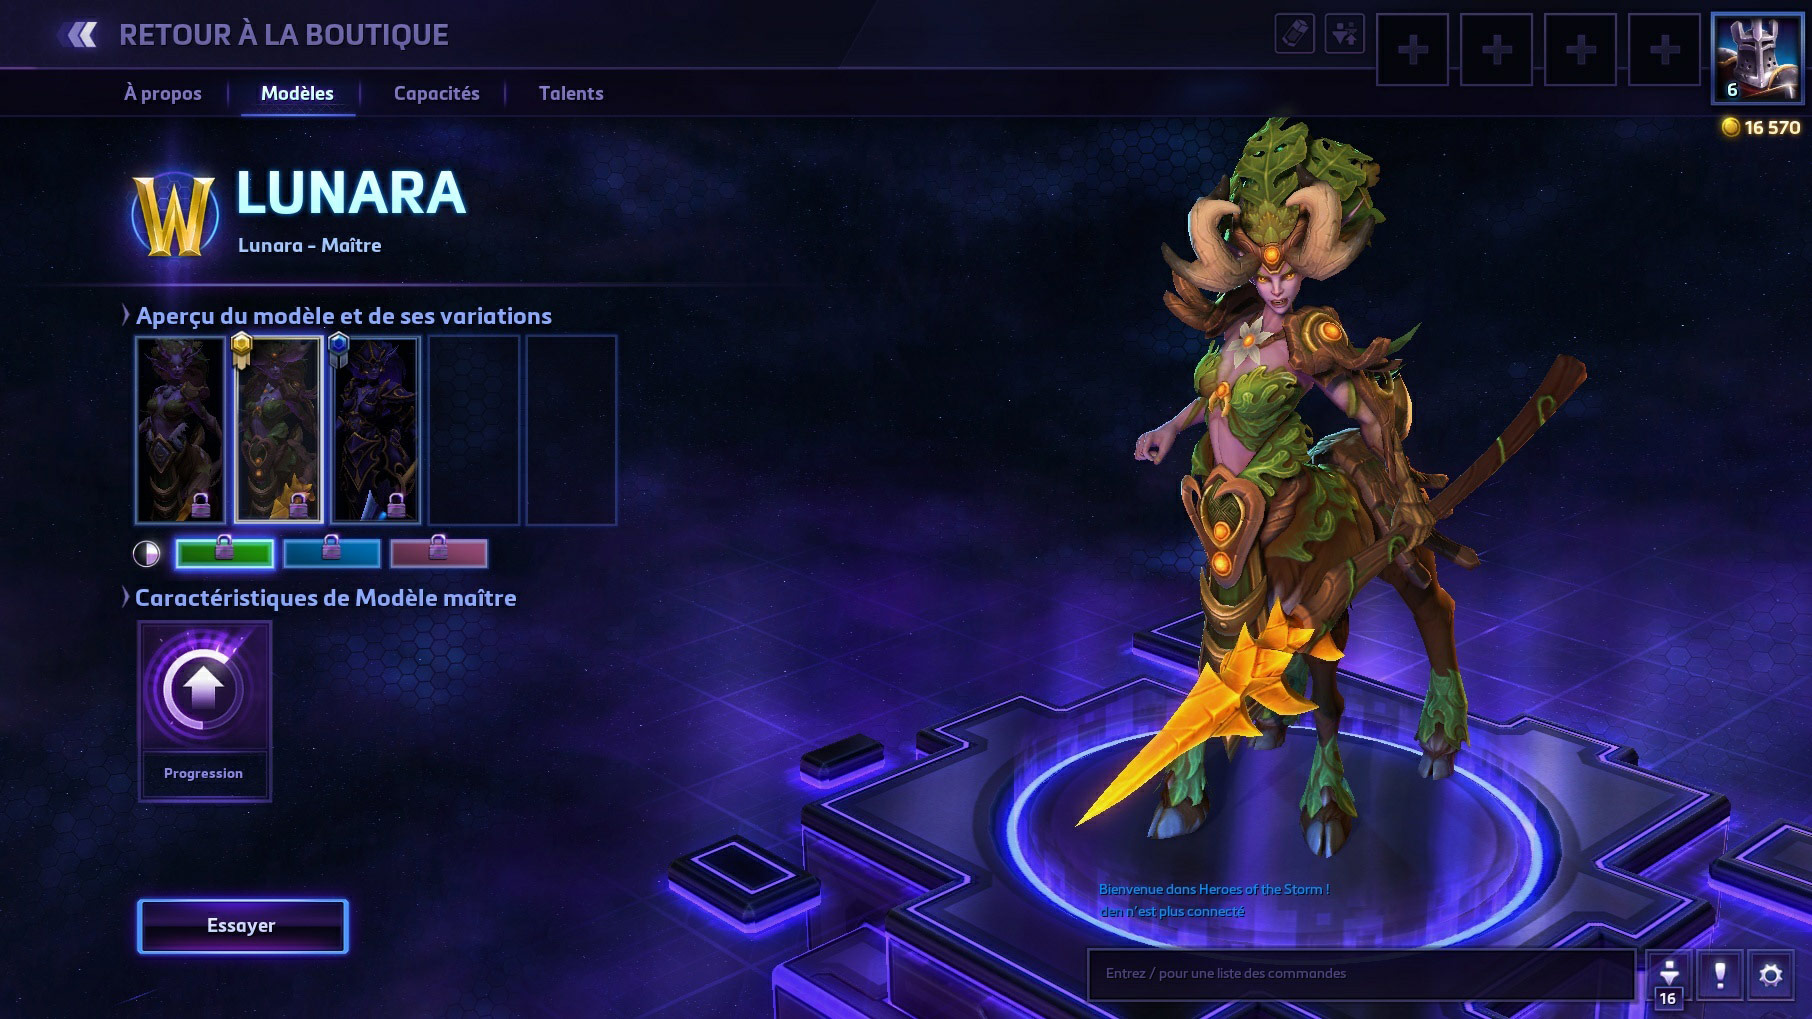 Apparence de Lunara dans Heroes of the Storm.